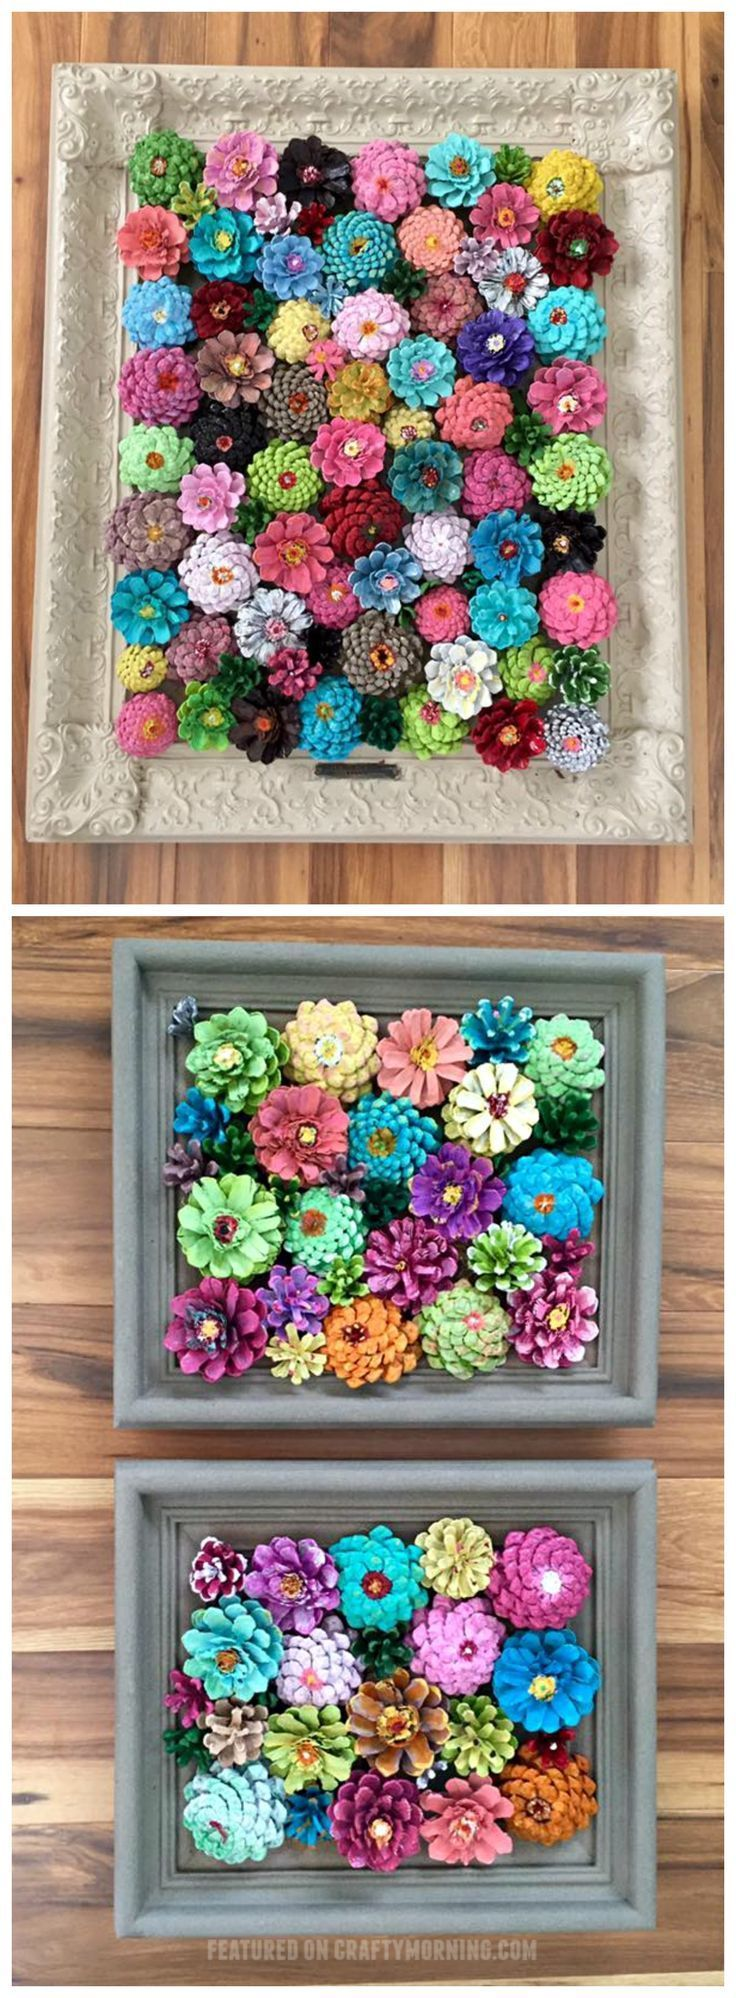 These Pinecone Flowers In A Frame Are So Pretty Perfect Craft For